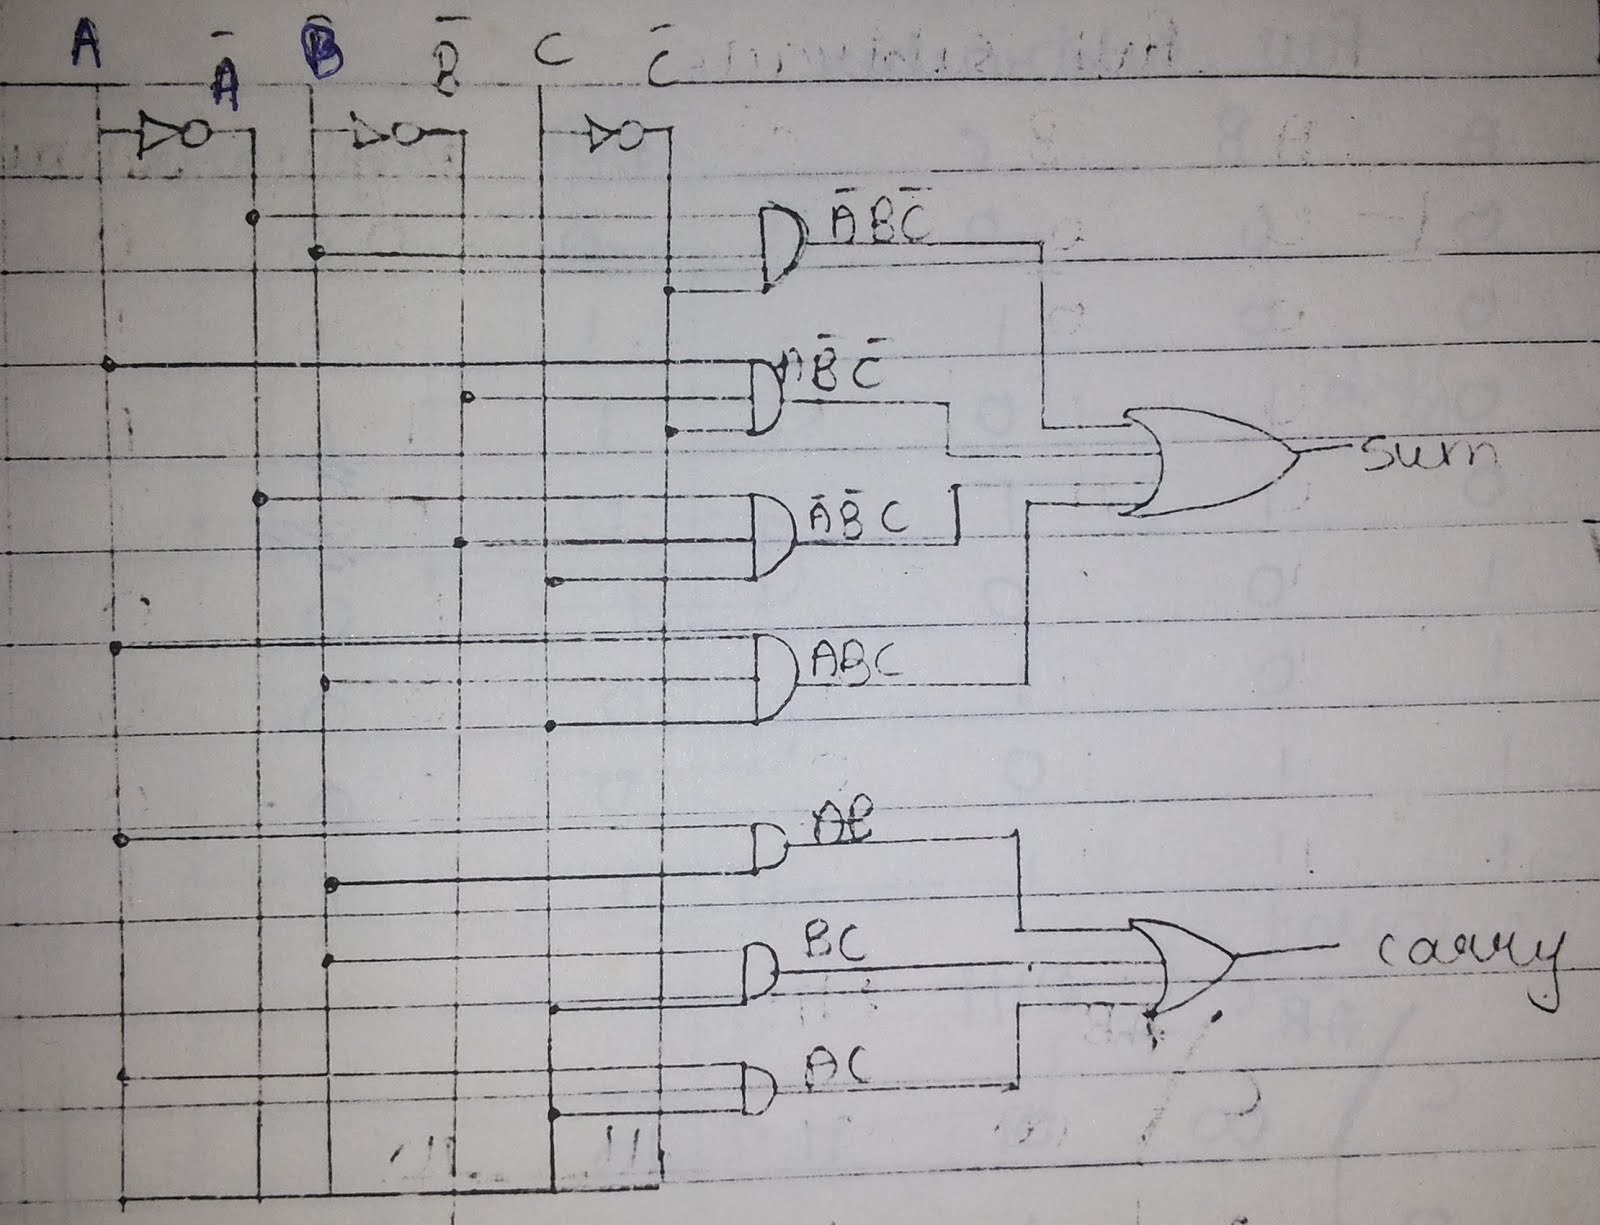 Basic Digital Techniques Applications Part 5 Logic Diagram Half Adder As Shown In The Above All Products Are Formed With Logical And Gate For Sum Or Is Used